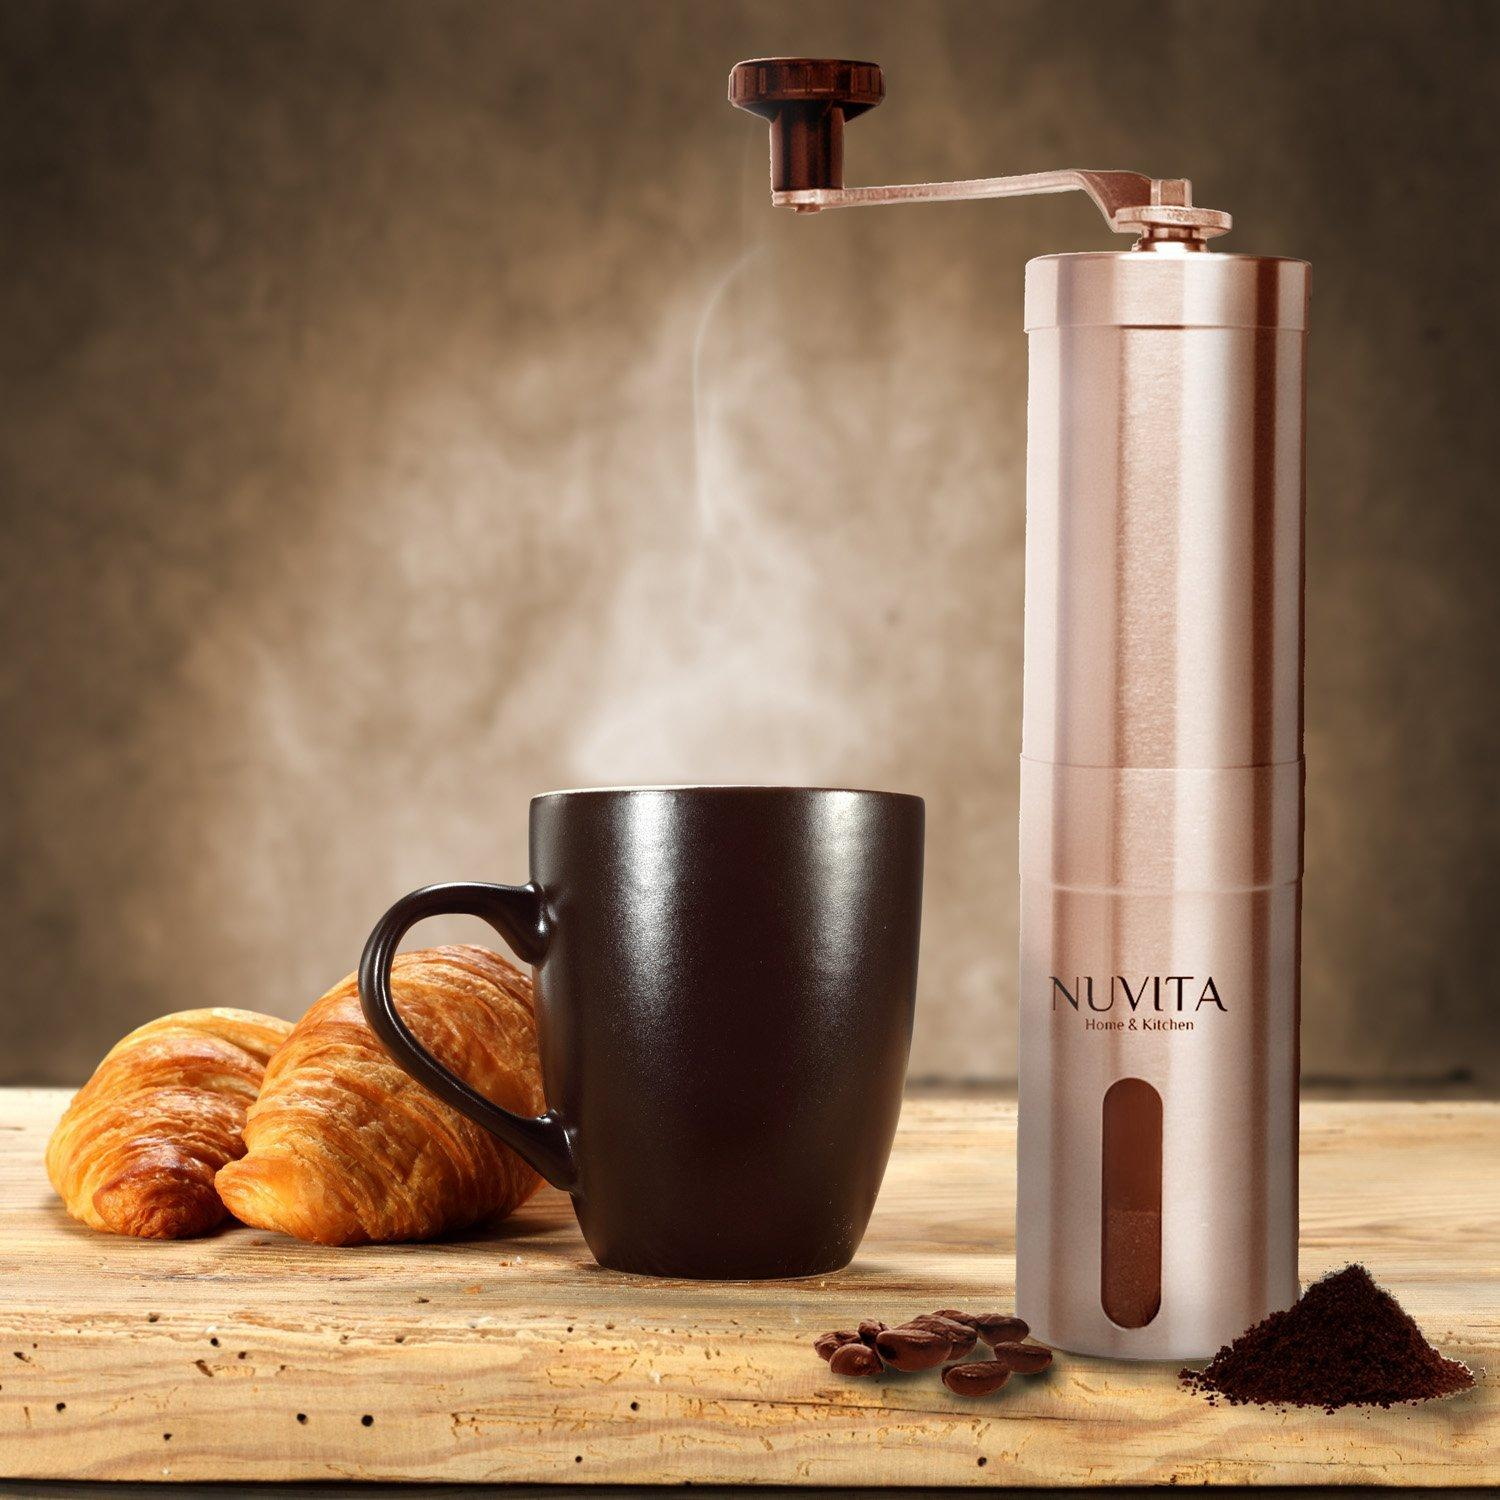 $10.95 Nuvita Manual Burr Coffee Grinder